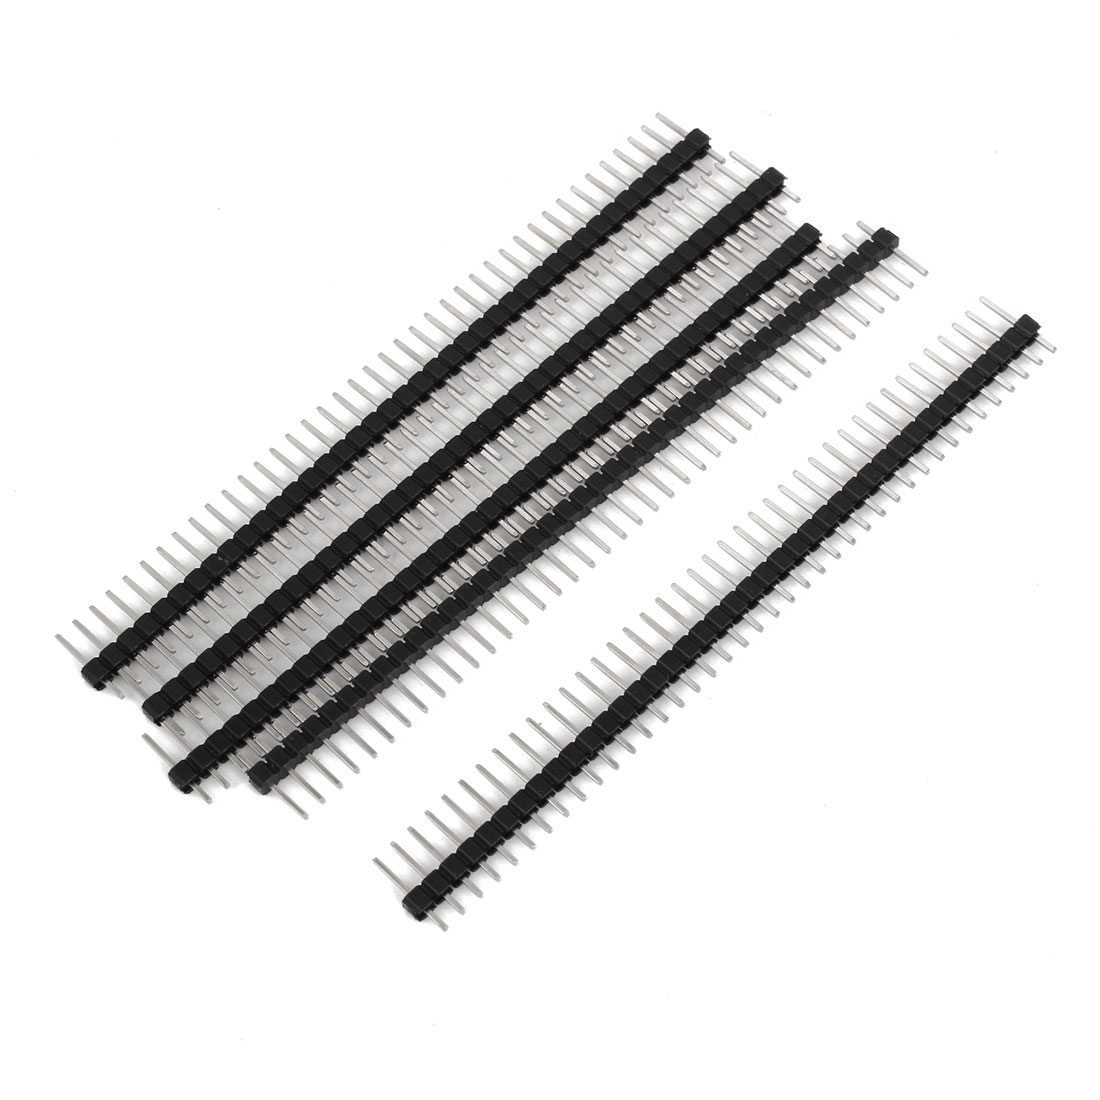 5 Pcs 1x40 Pin 2.54mm Pitch Straight Single Row PCB Pin Headers